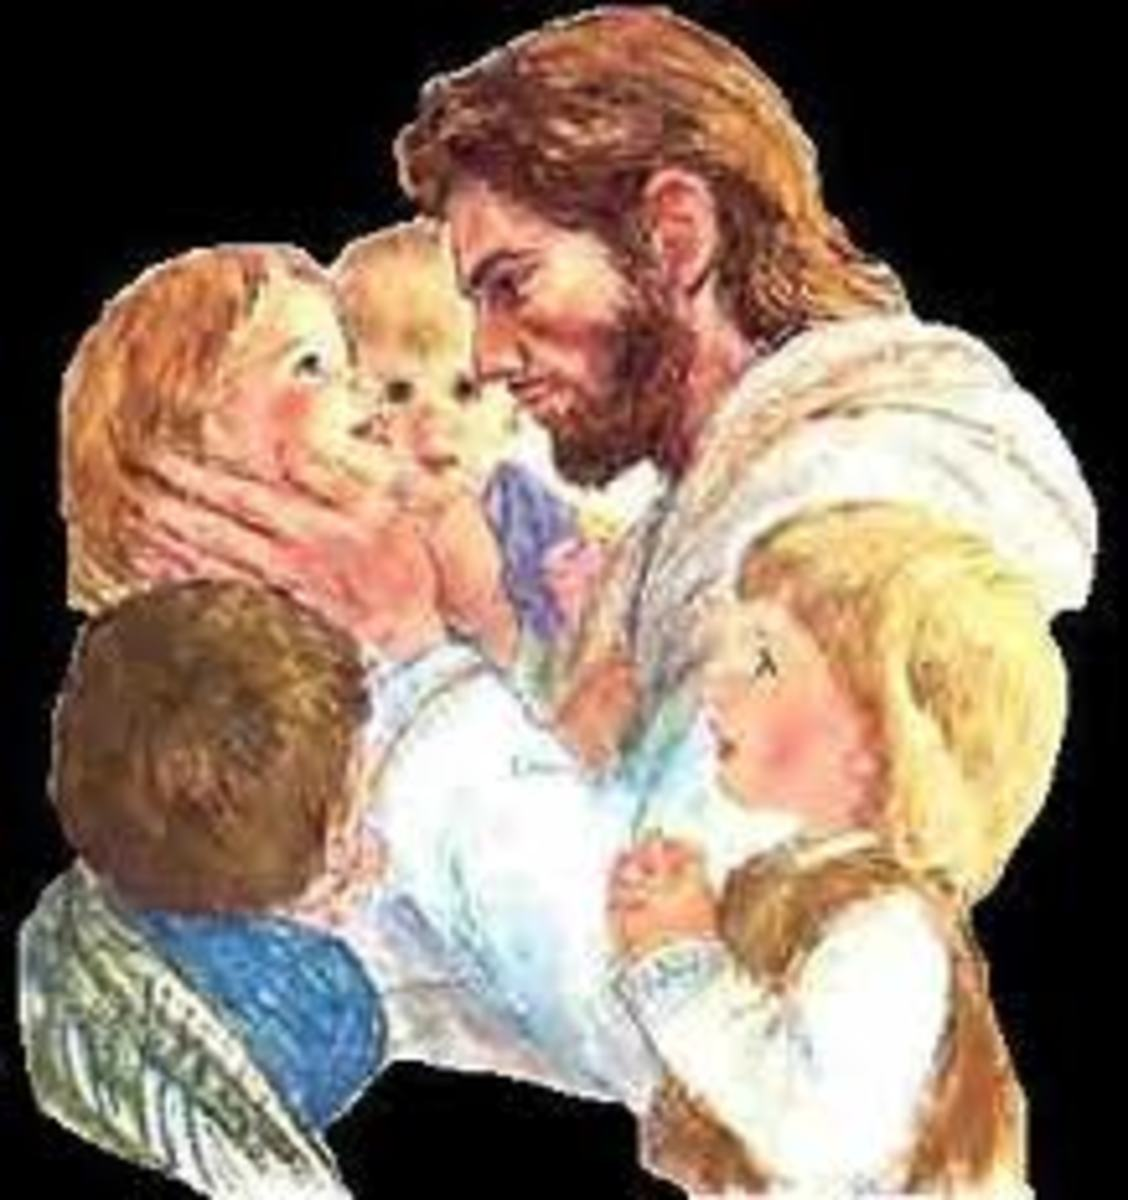 Jesus loves all children.